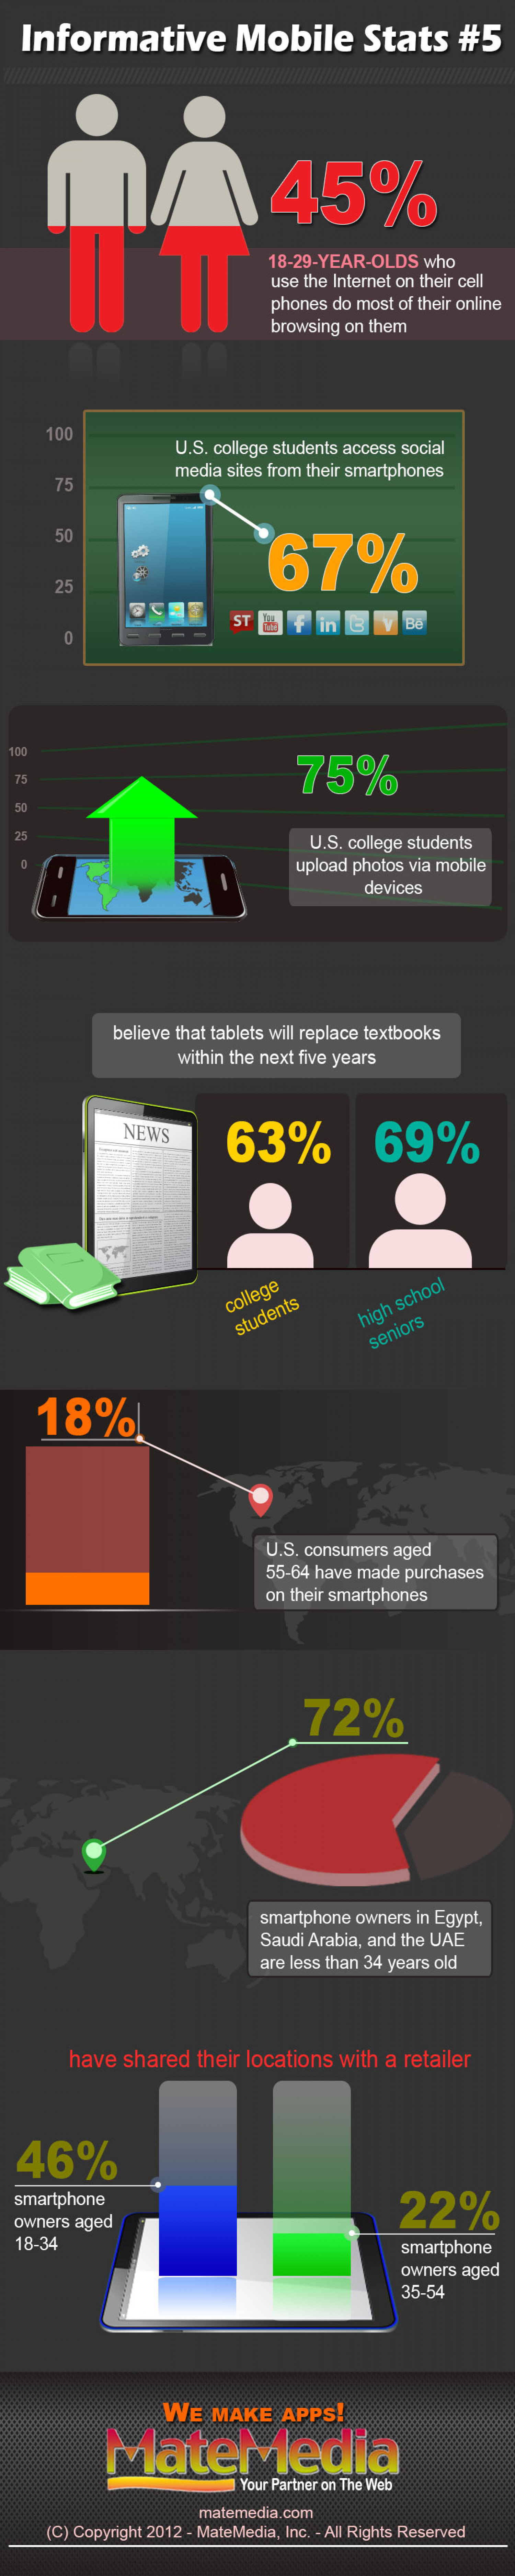 Informative Mobile Stats #5 Infographic